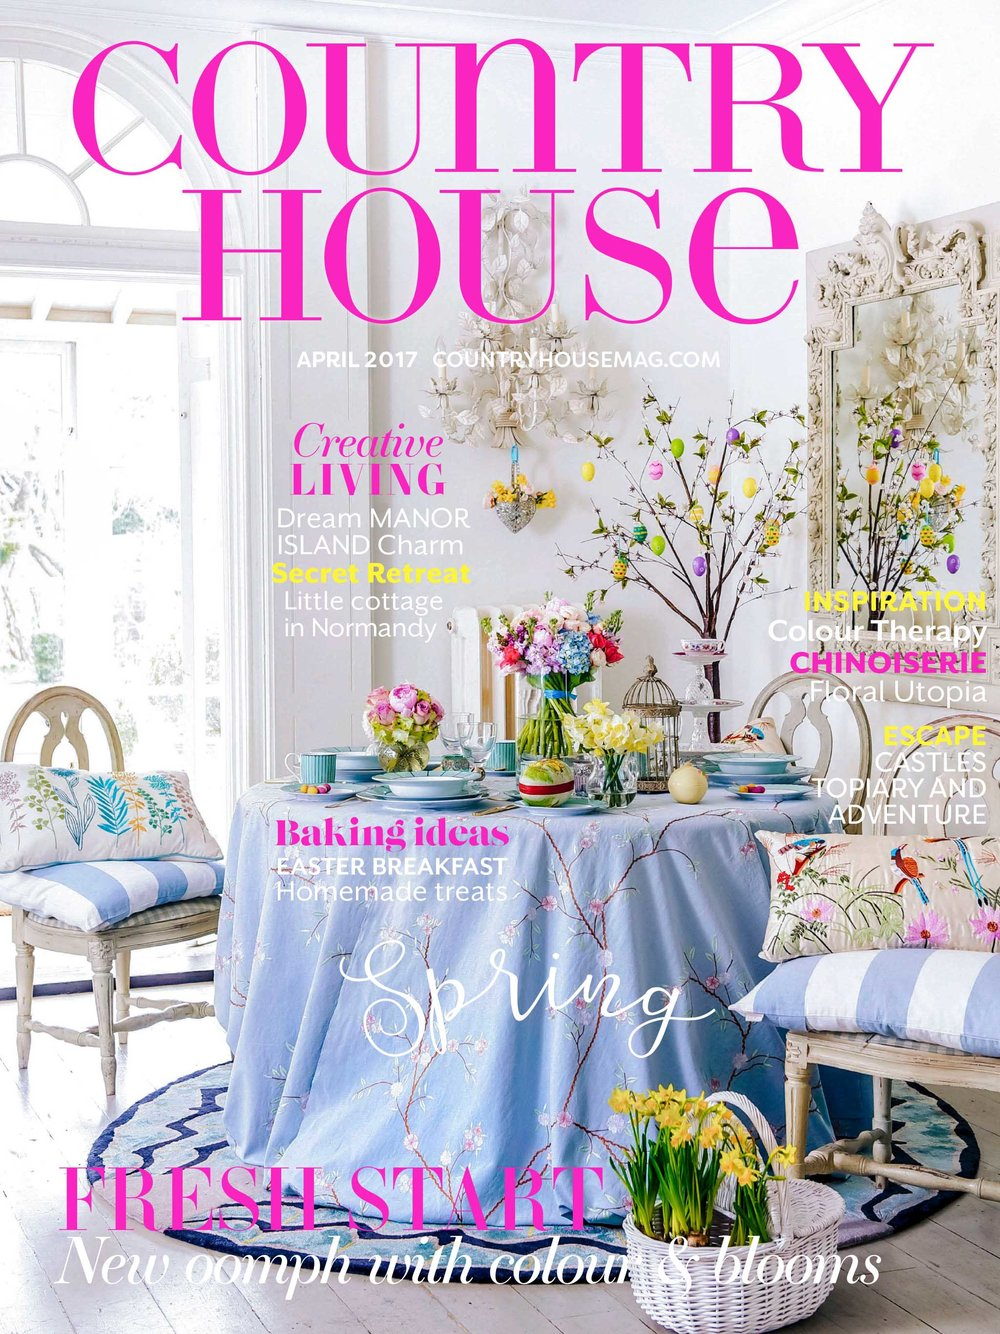 Country House magazine, April 2017